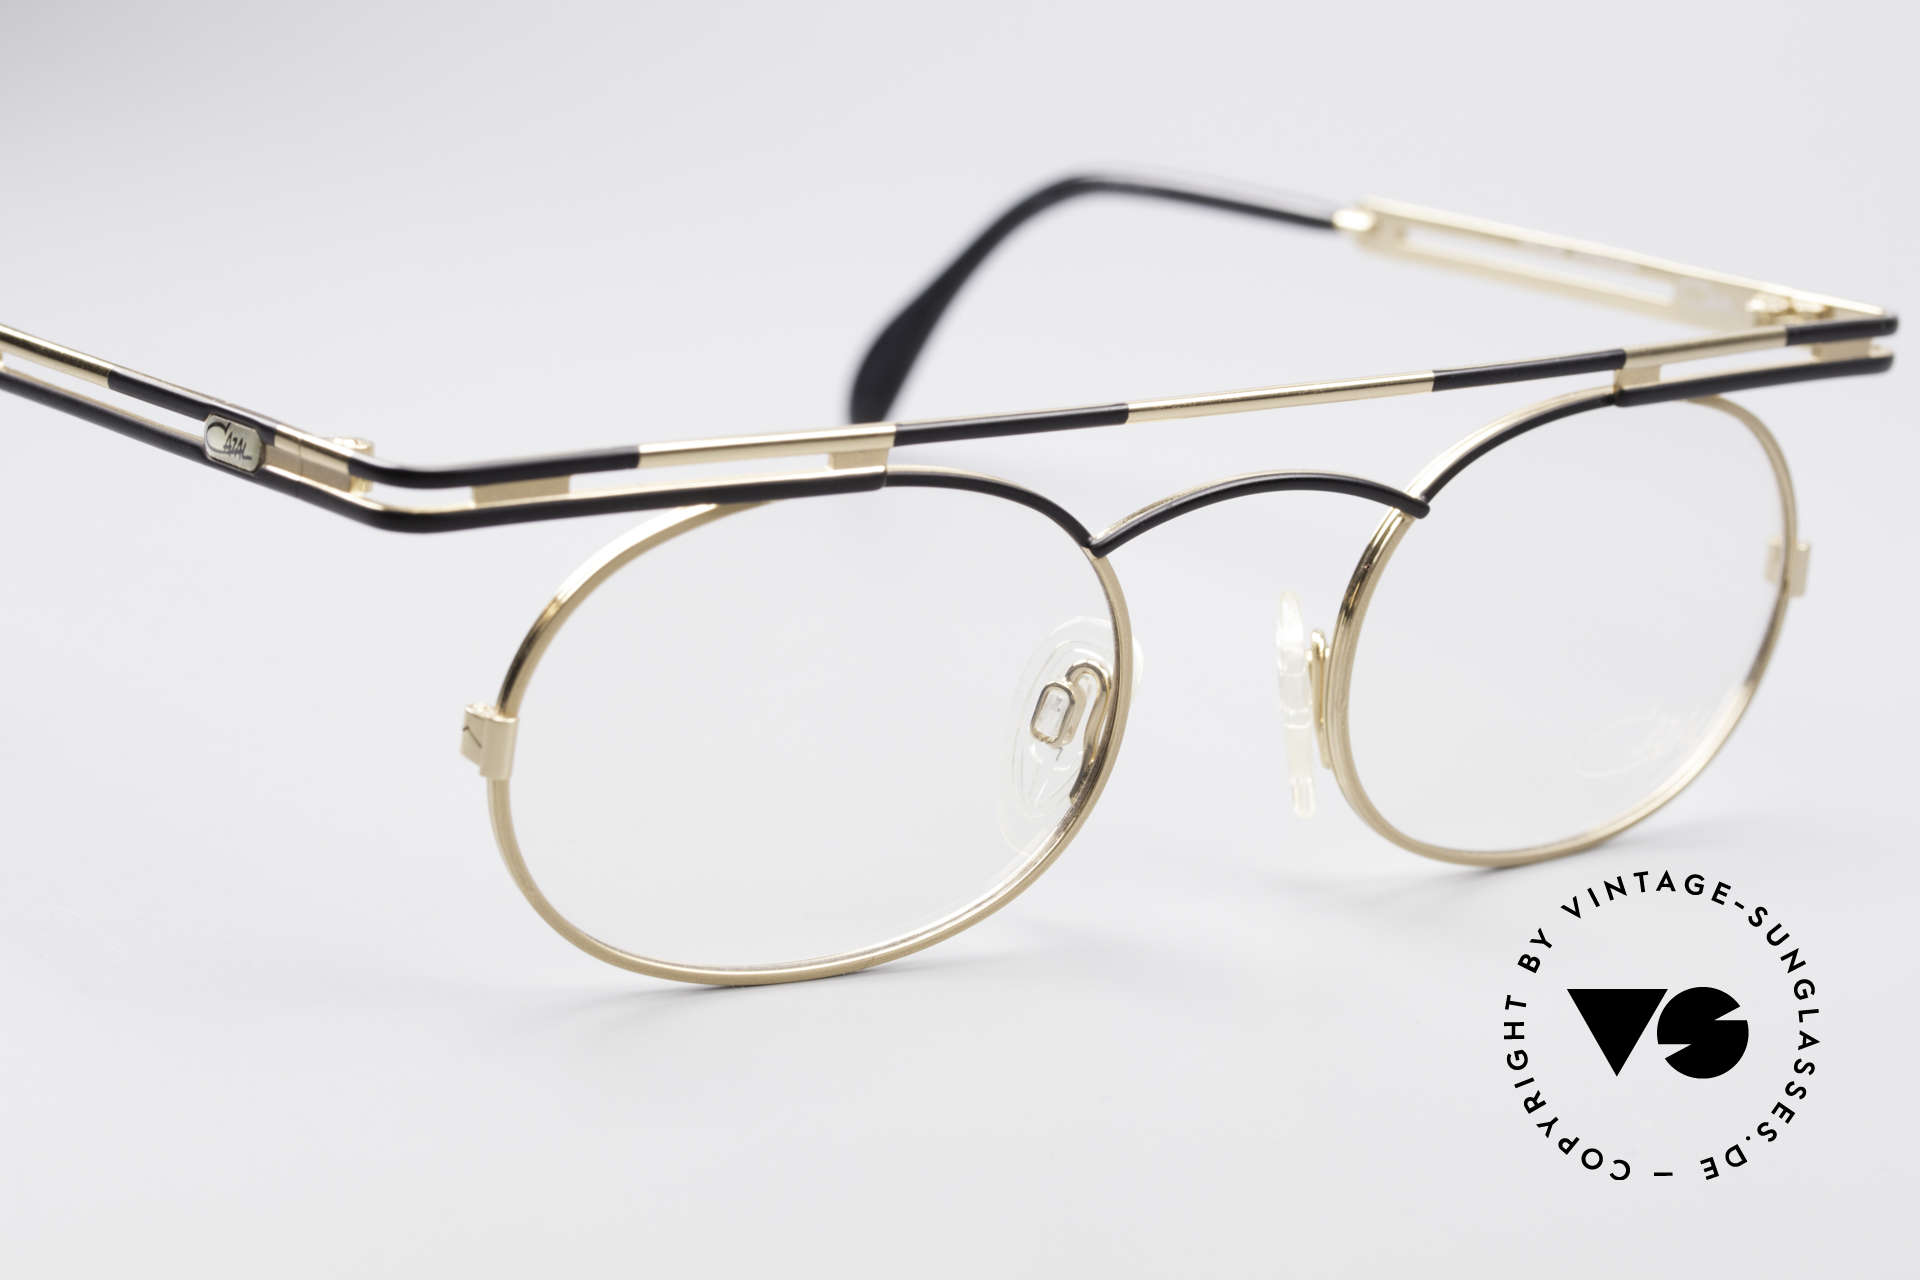 Cazal 761 Vintage Frame NO Retro Glasses, NO RETRO GLASSES, but true VINTAGE eyeglasses!, Made for Men and Women